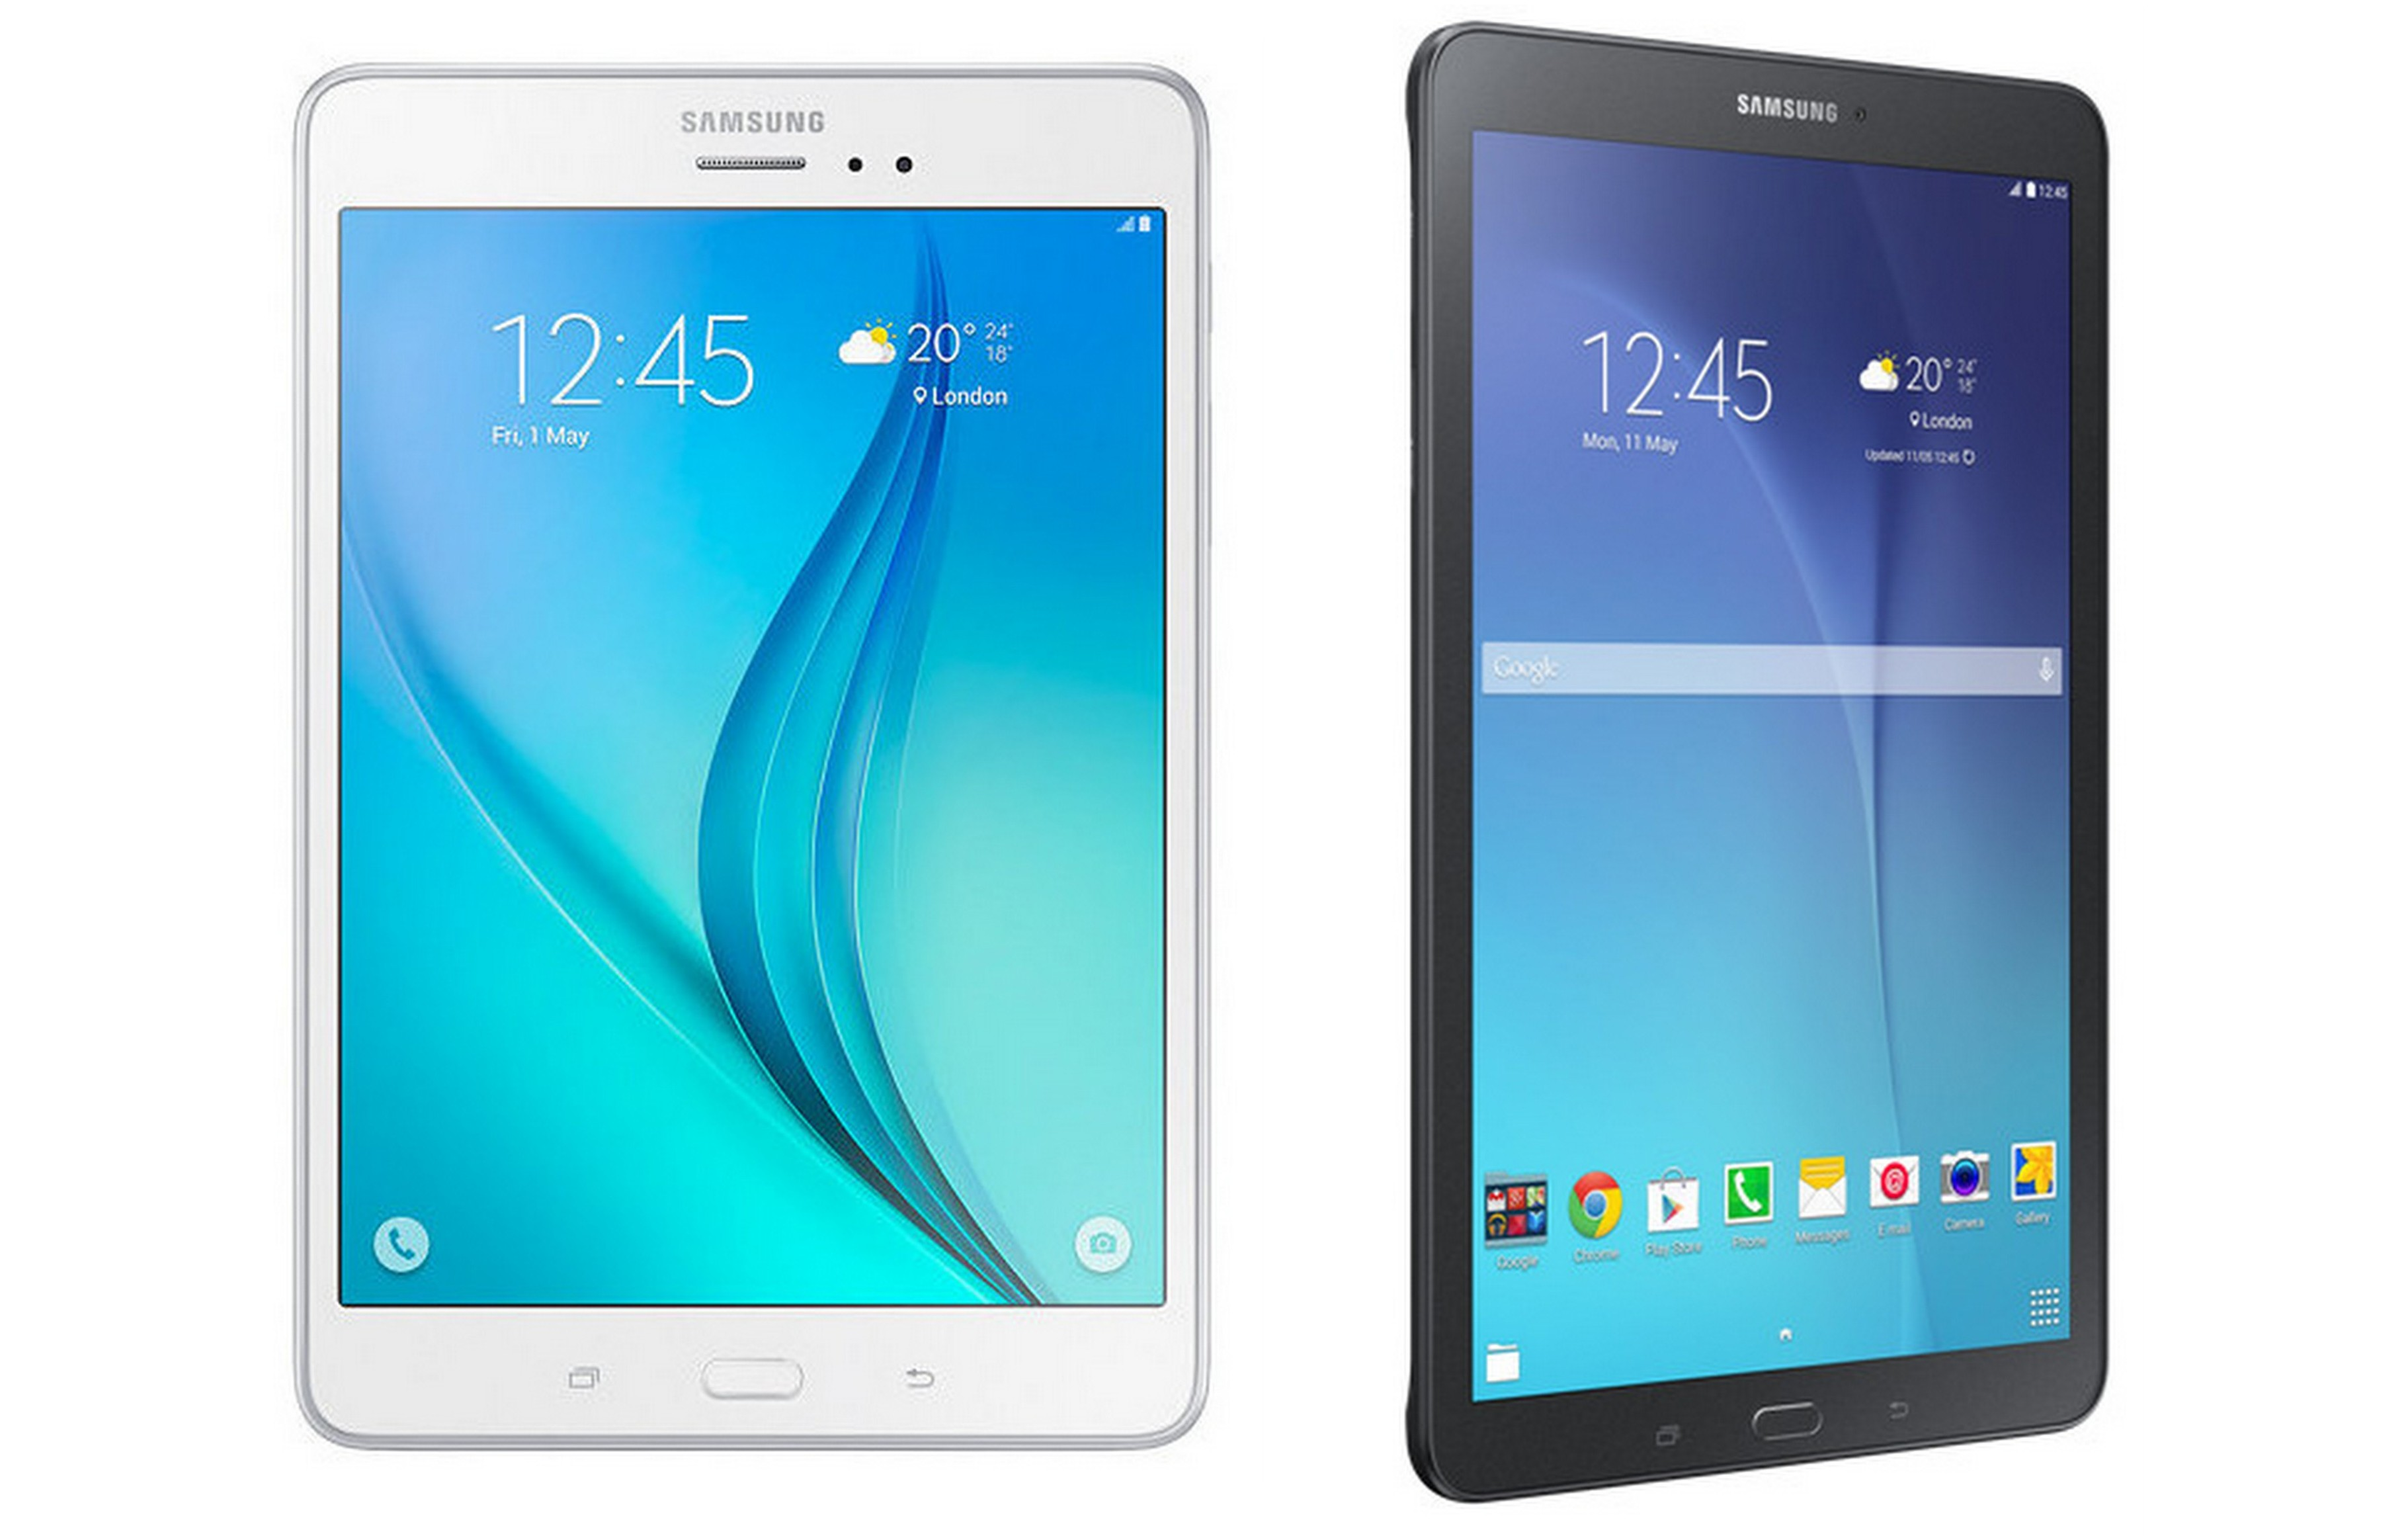 samsung galaxy tab e 9 6 inch tablet gets 13 price cut